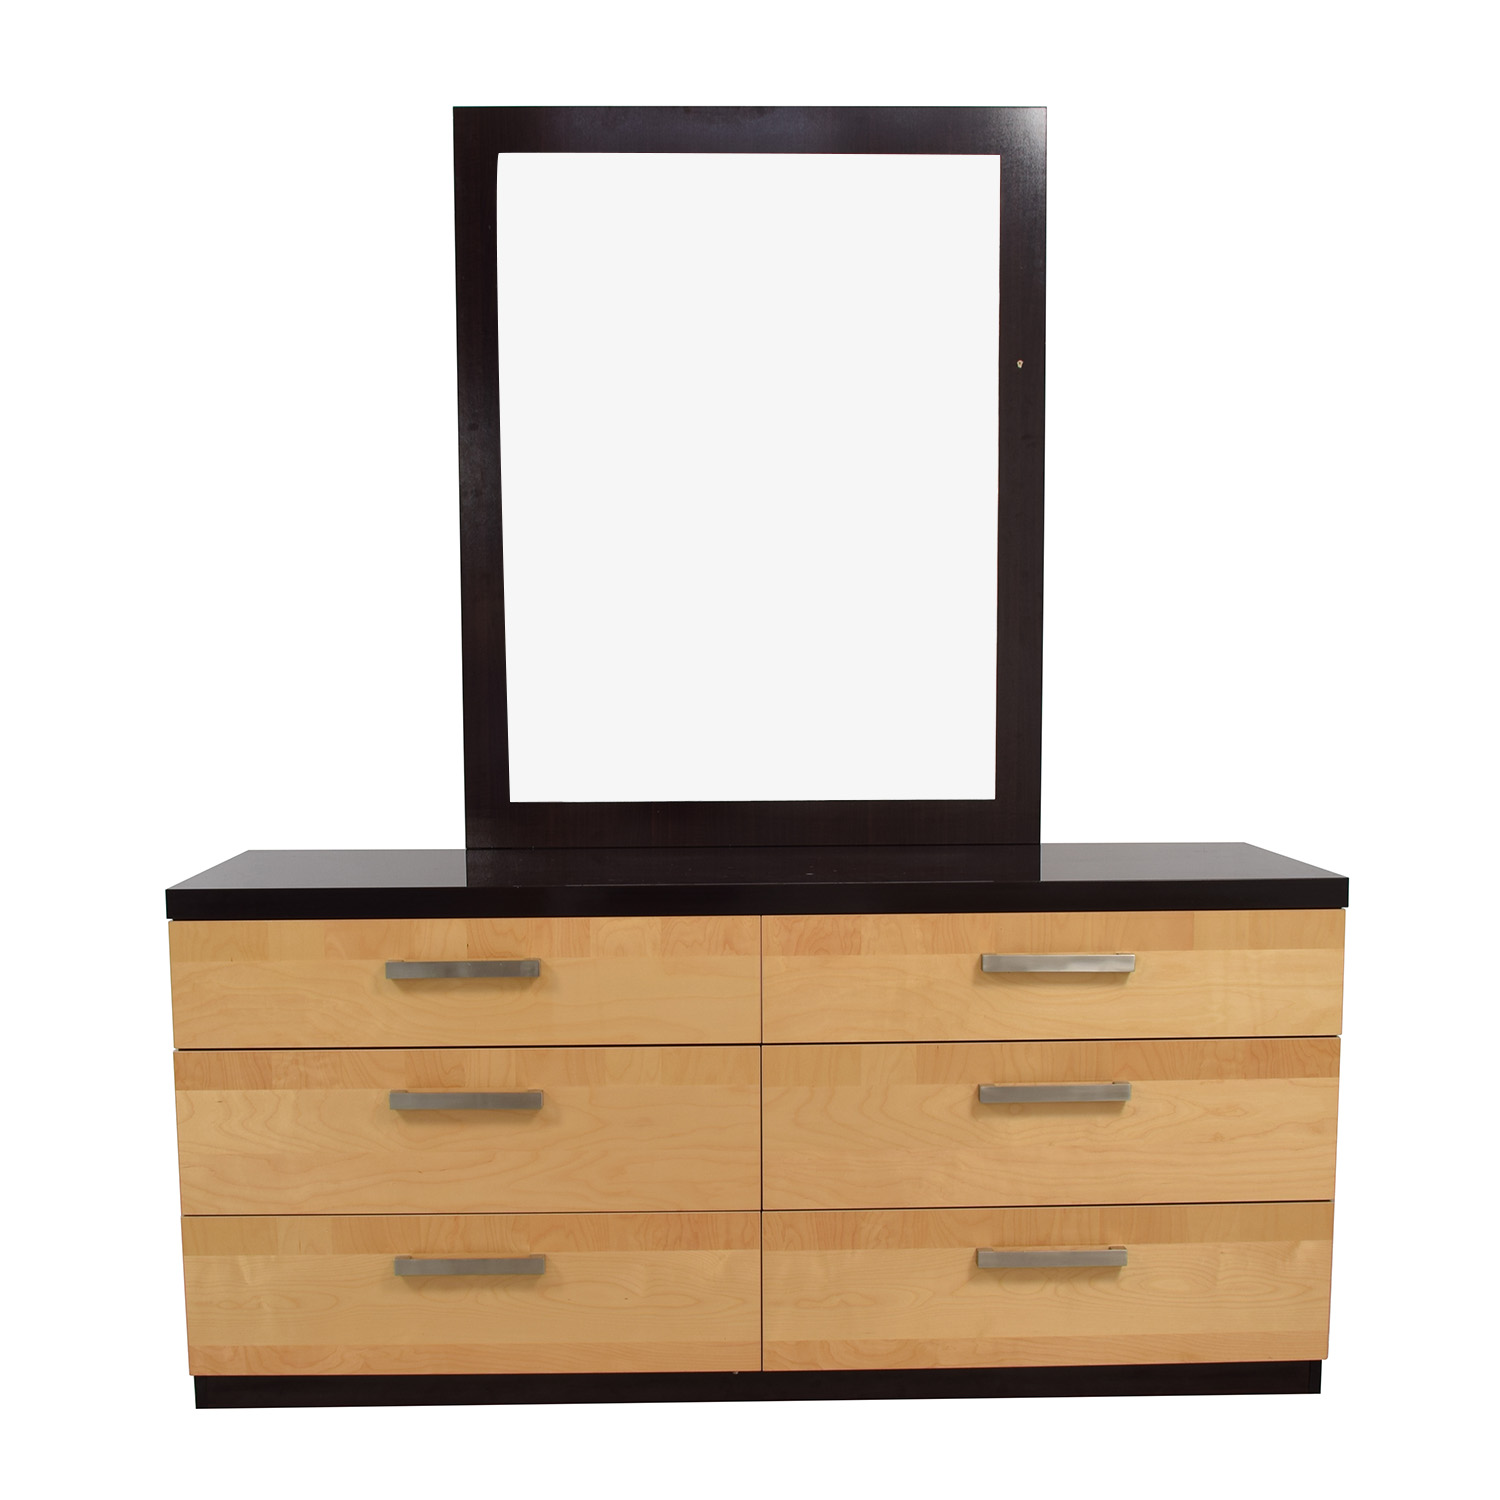 Design Group Design Group Italian Lacquered Six-Drawer Dresser with Mirror second hand